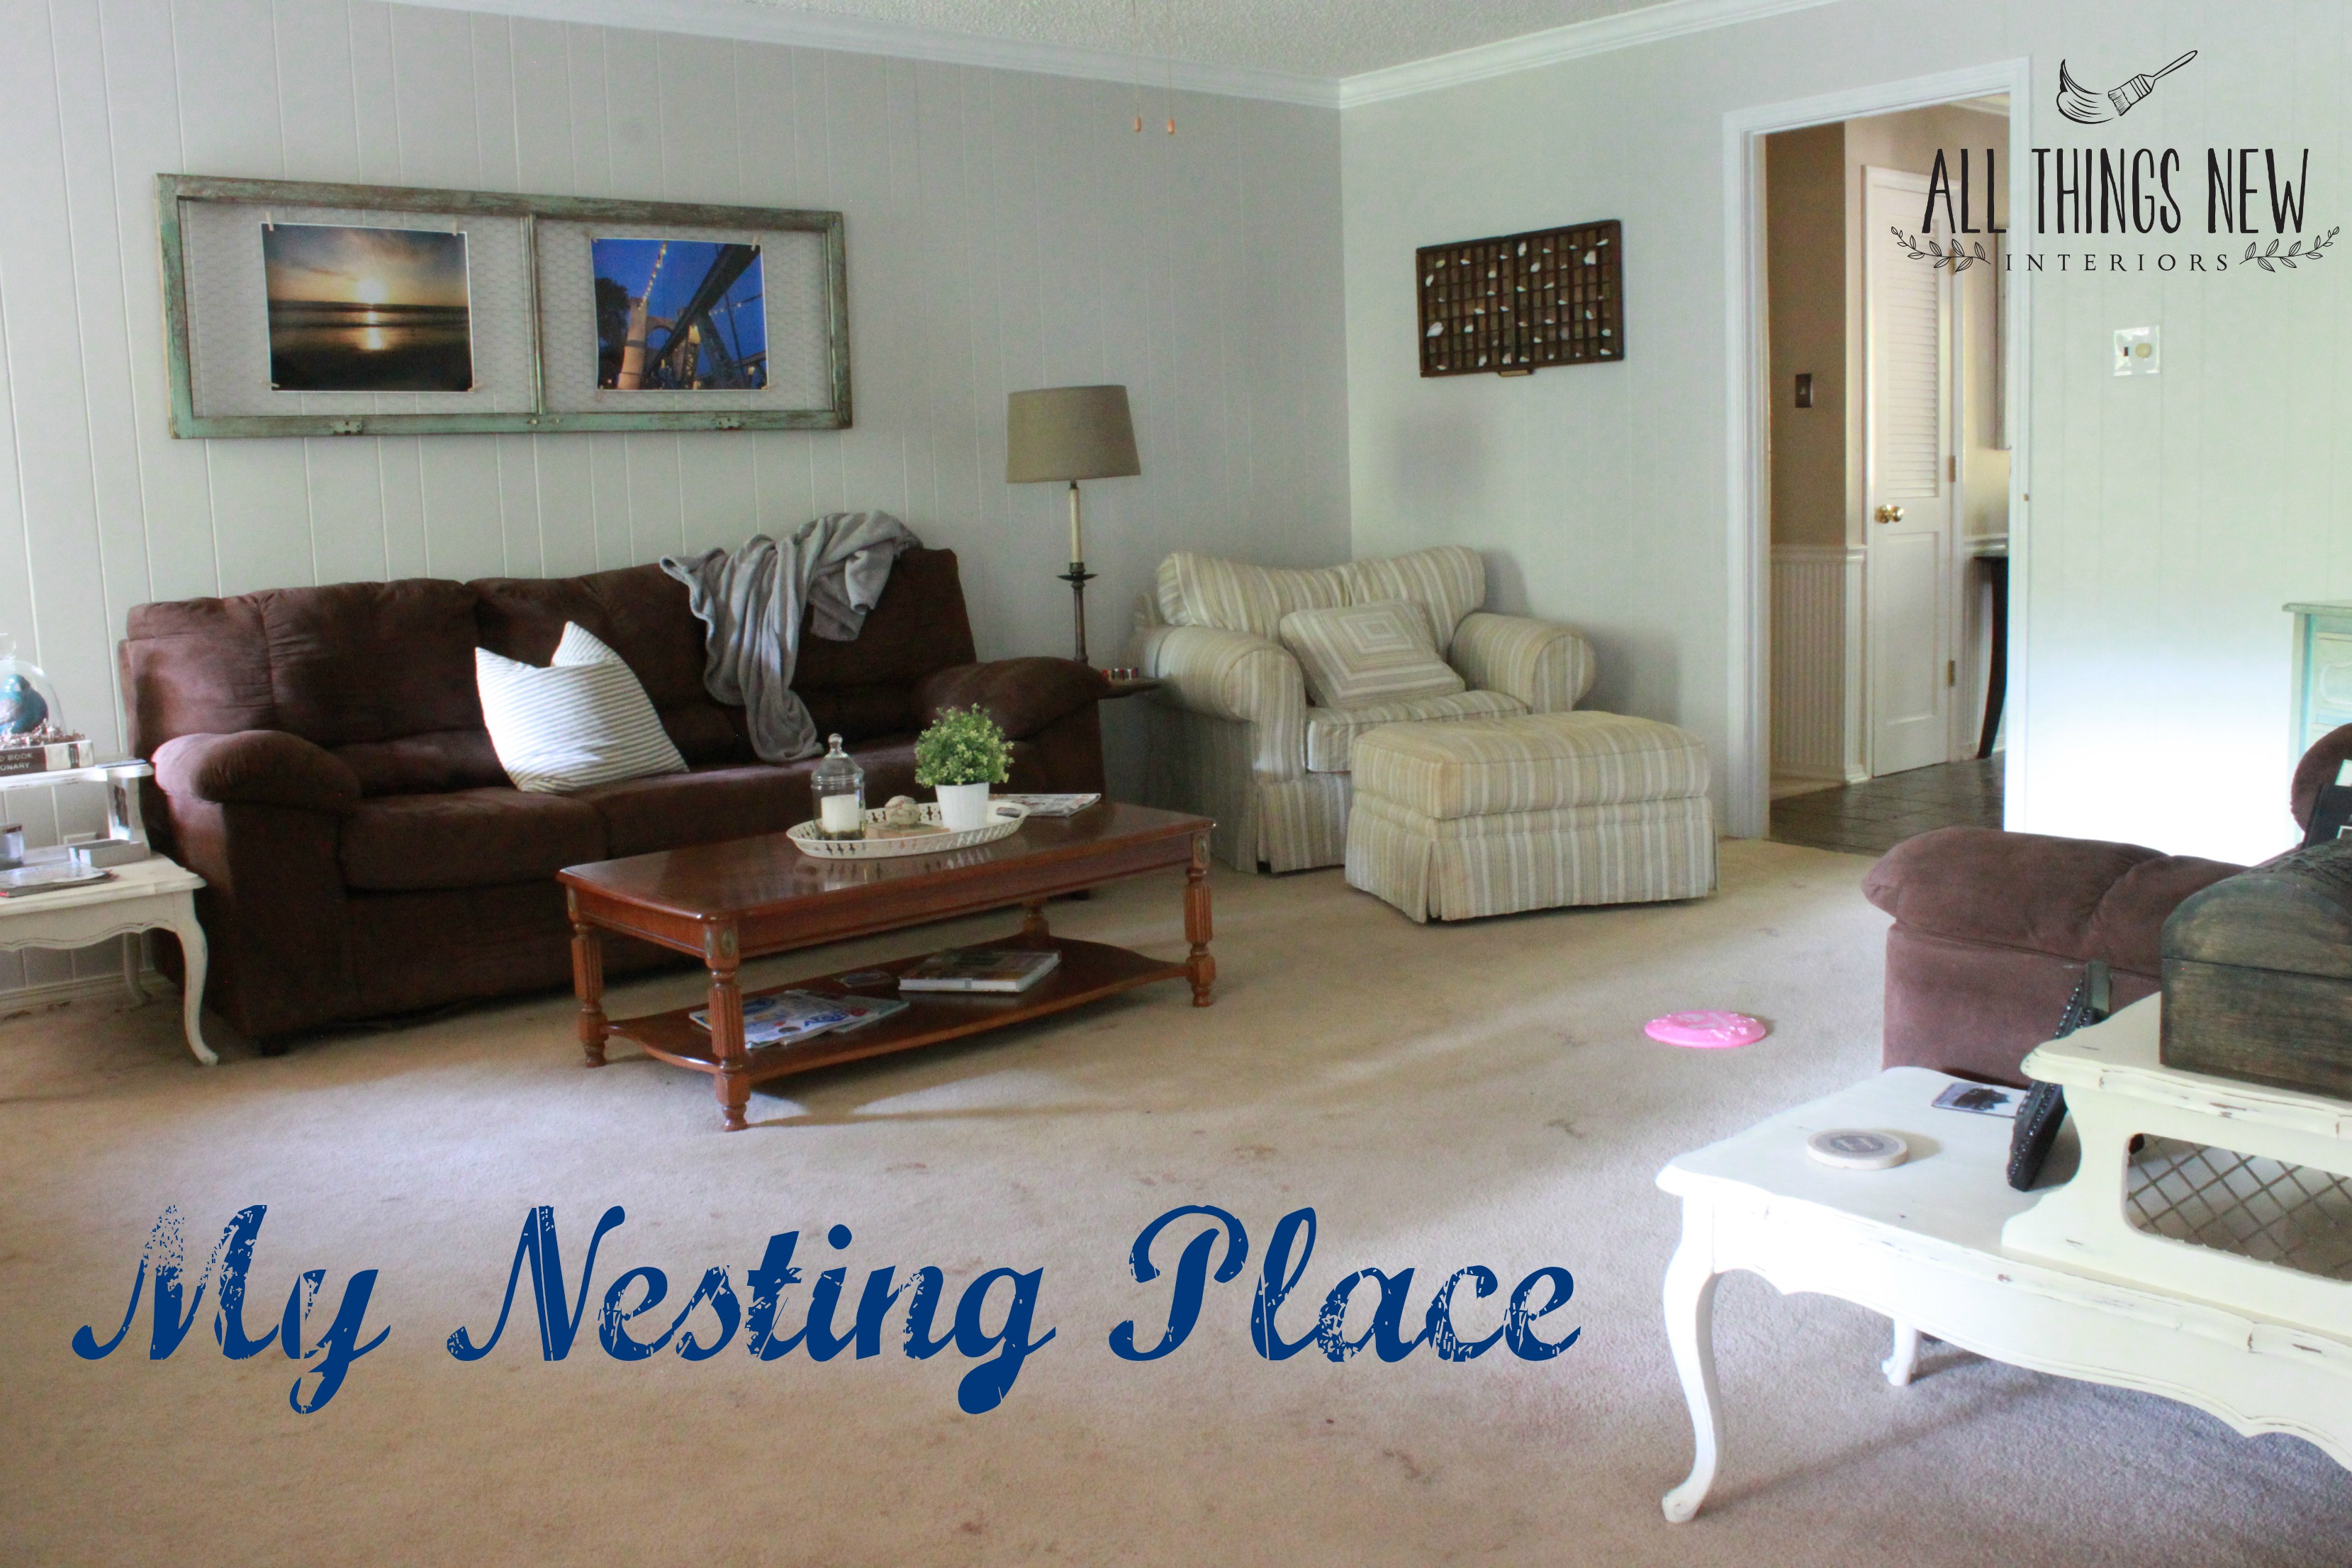 My Nesting Place All Things New Interiors